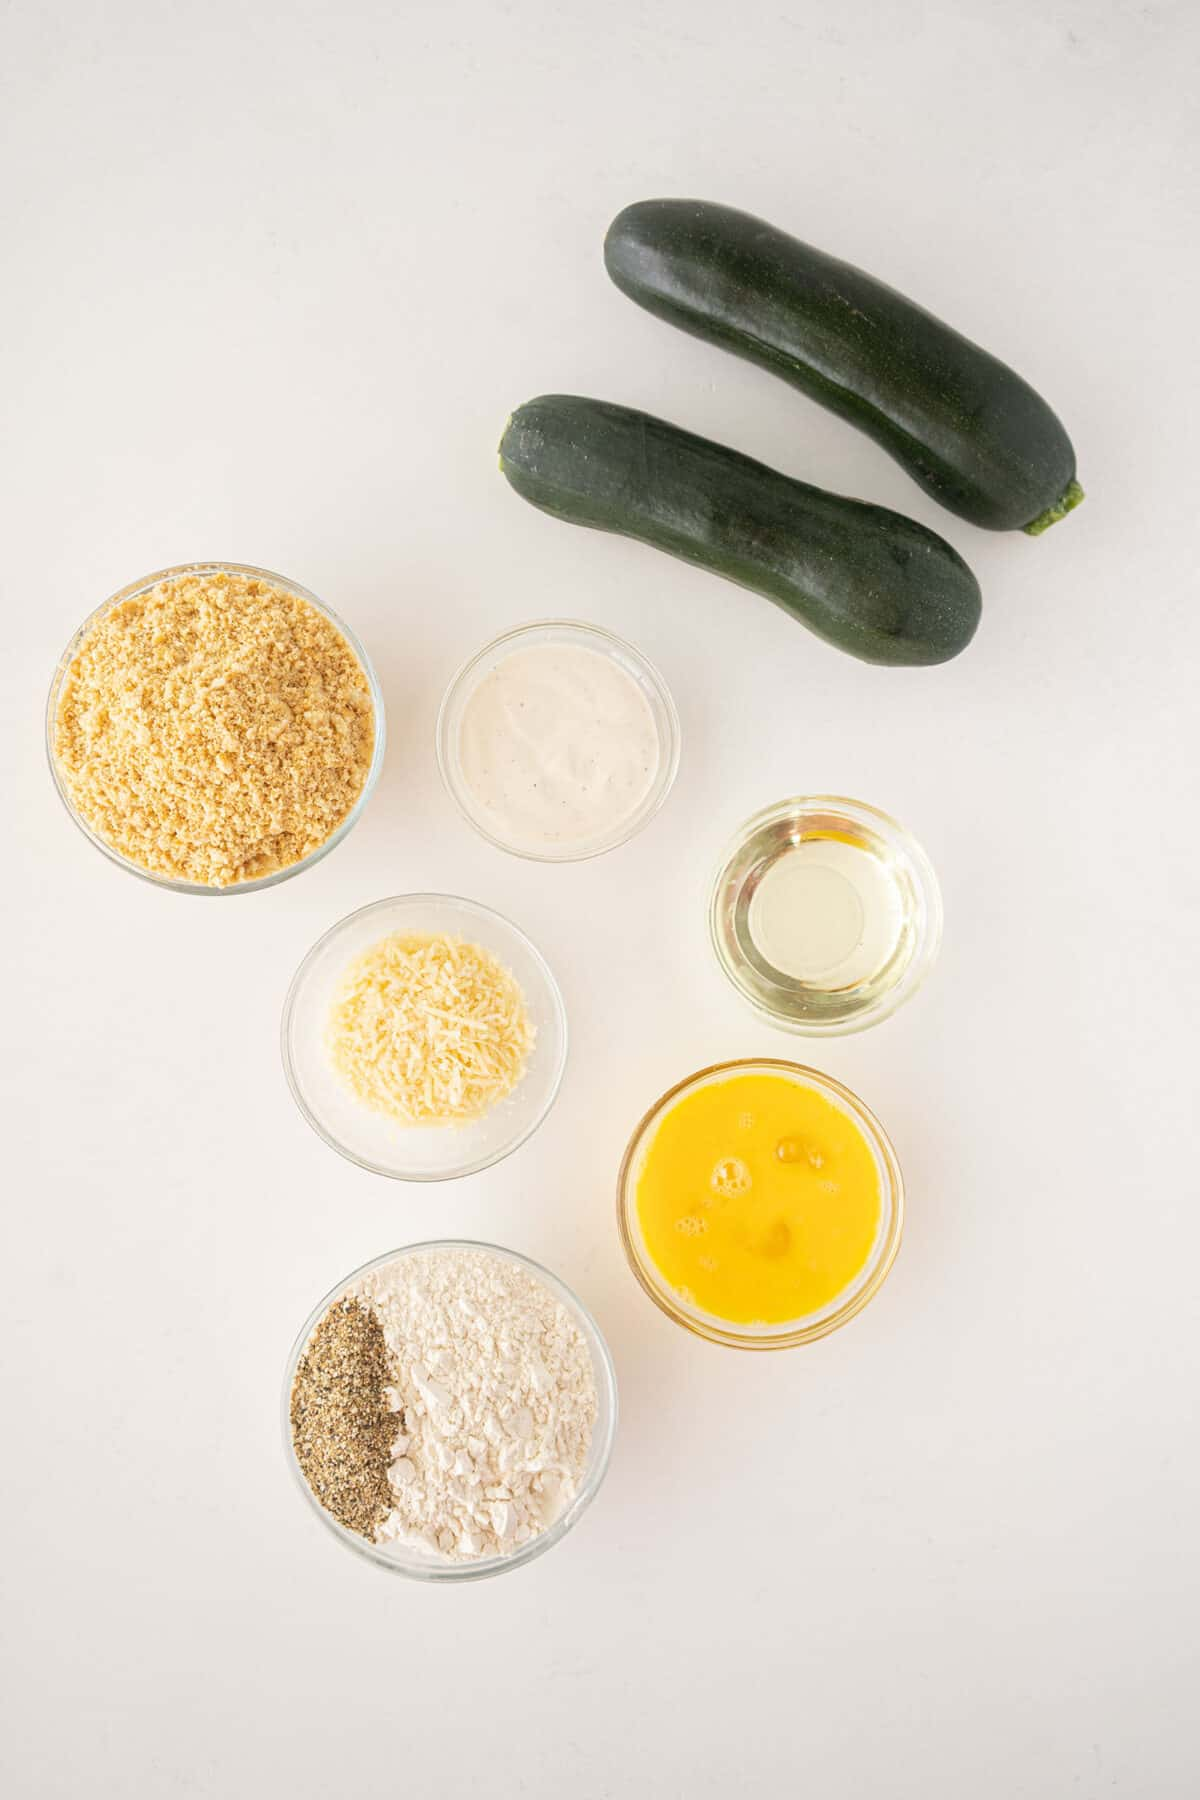 ingredients for fried zucchini